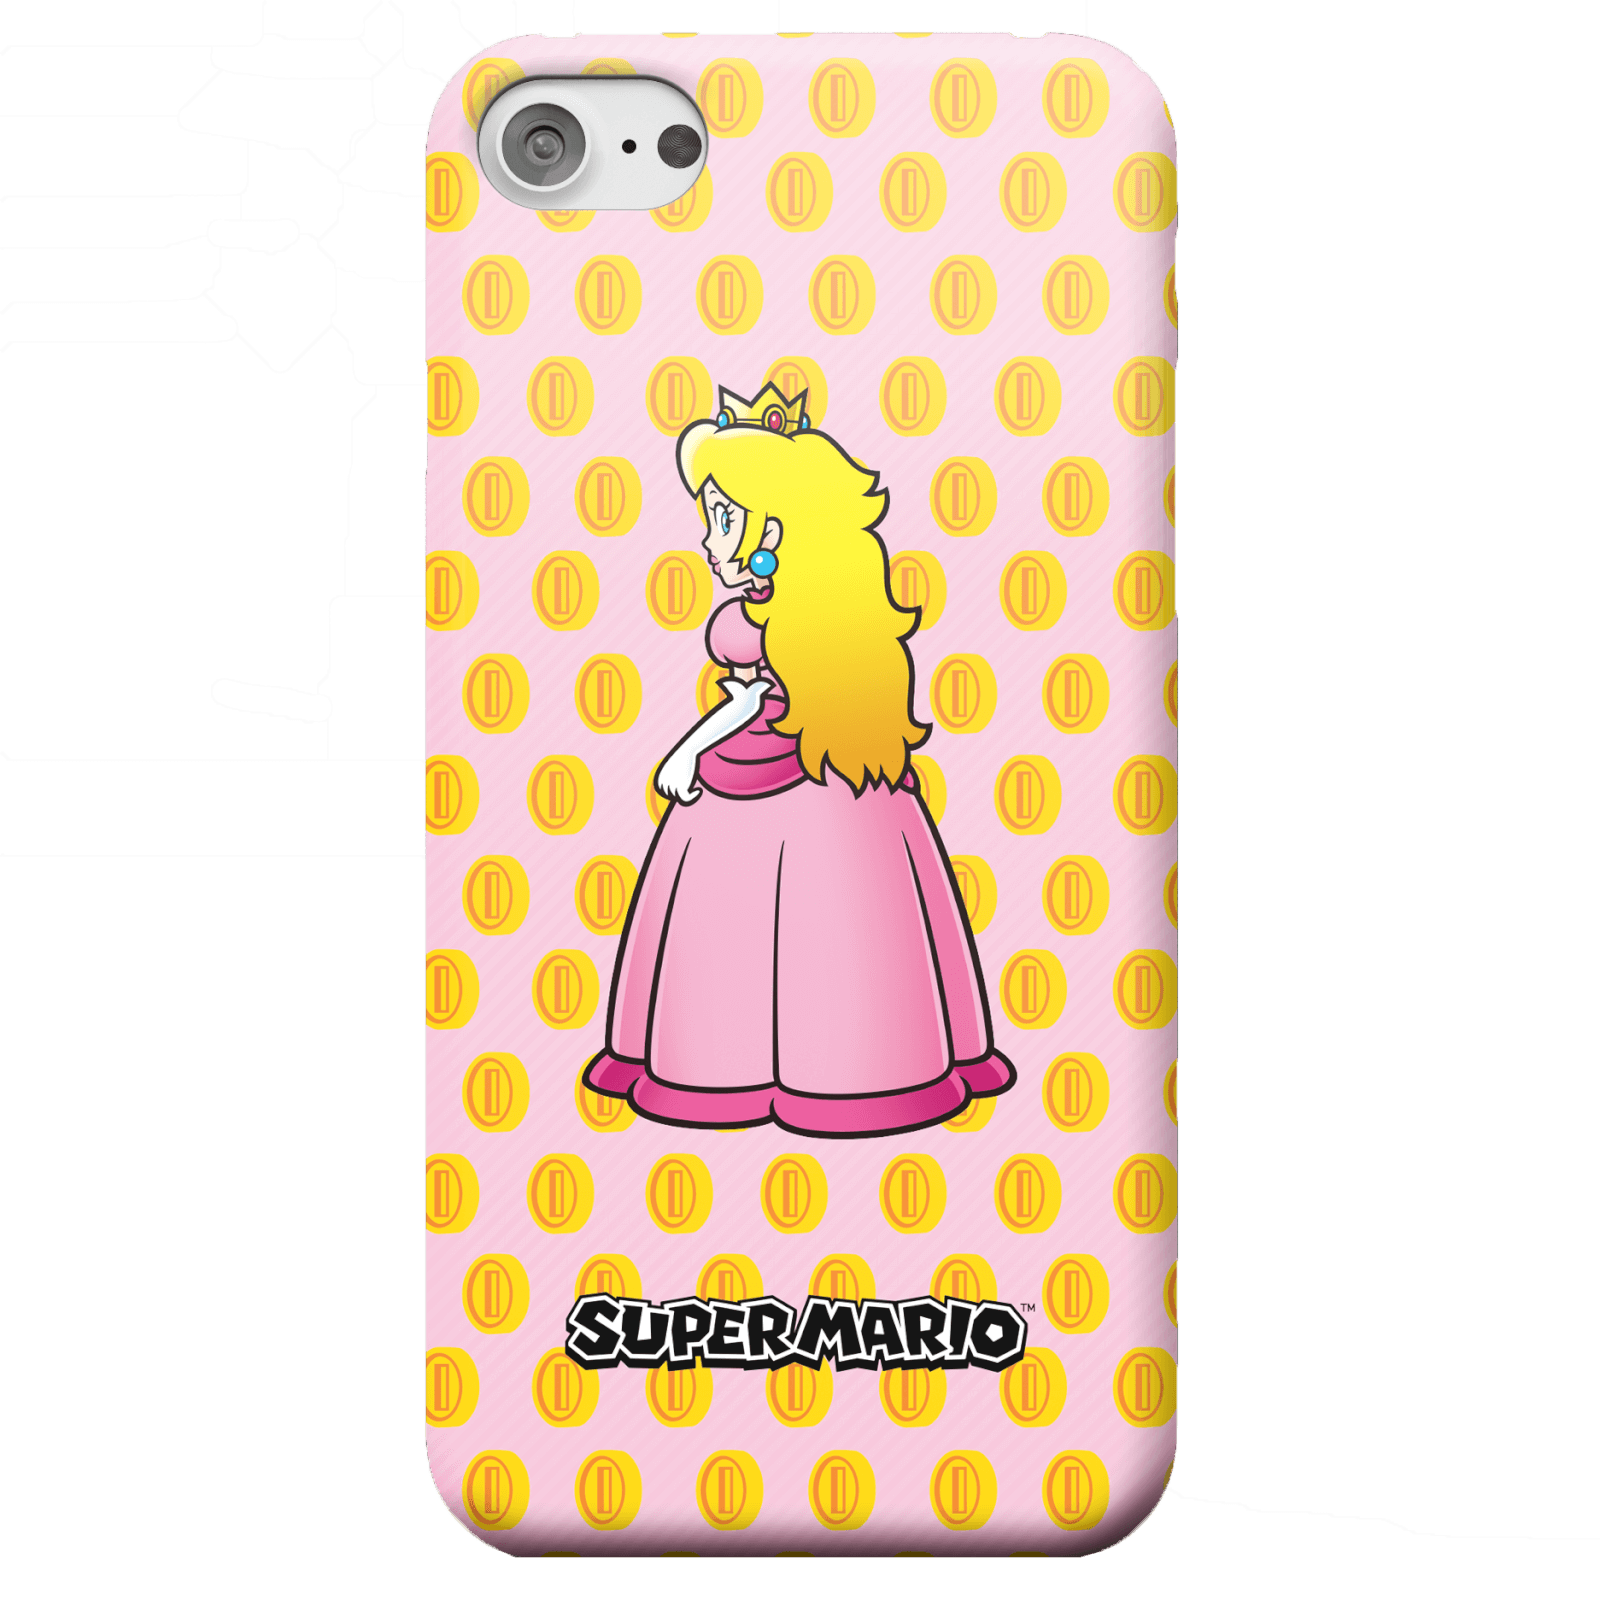 Nintendo Super Mario Princess Peach Peeking Phone Case